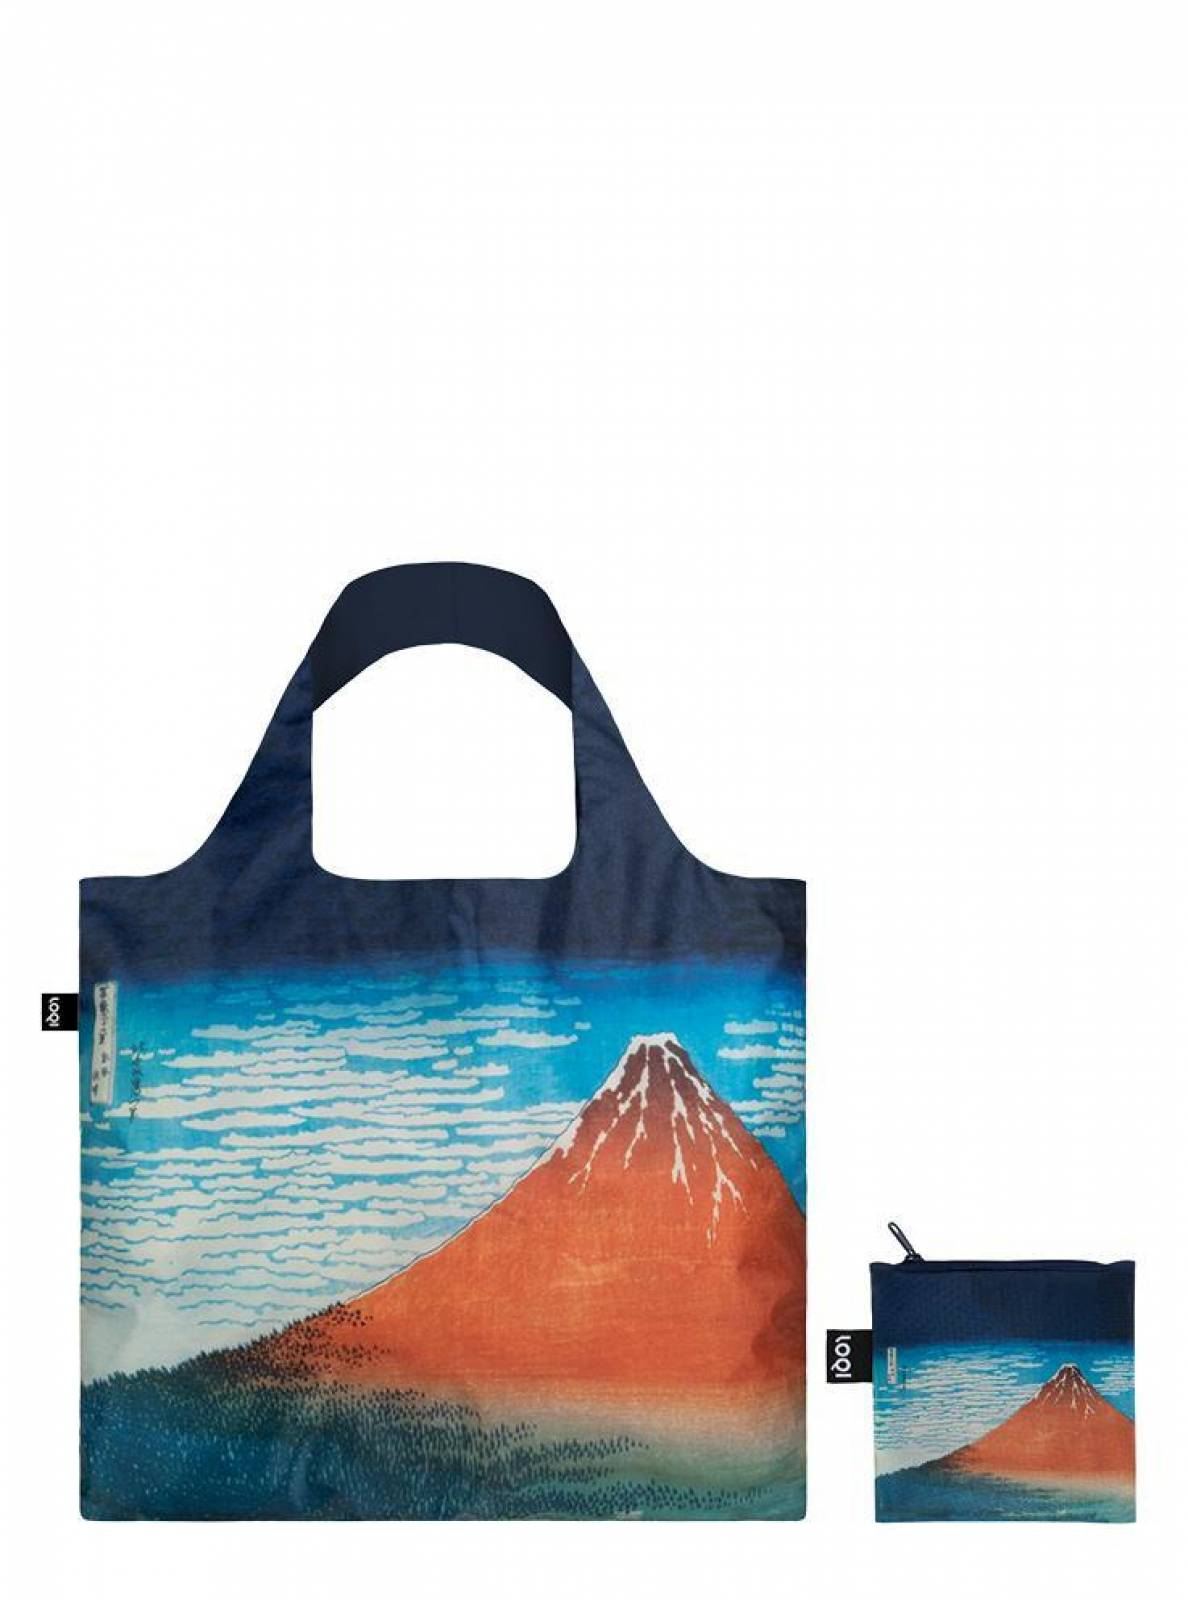 Red Fuji - Reusable Tote Bag With Pouch thumbnails